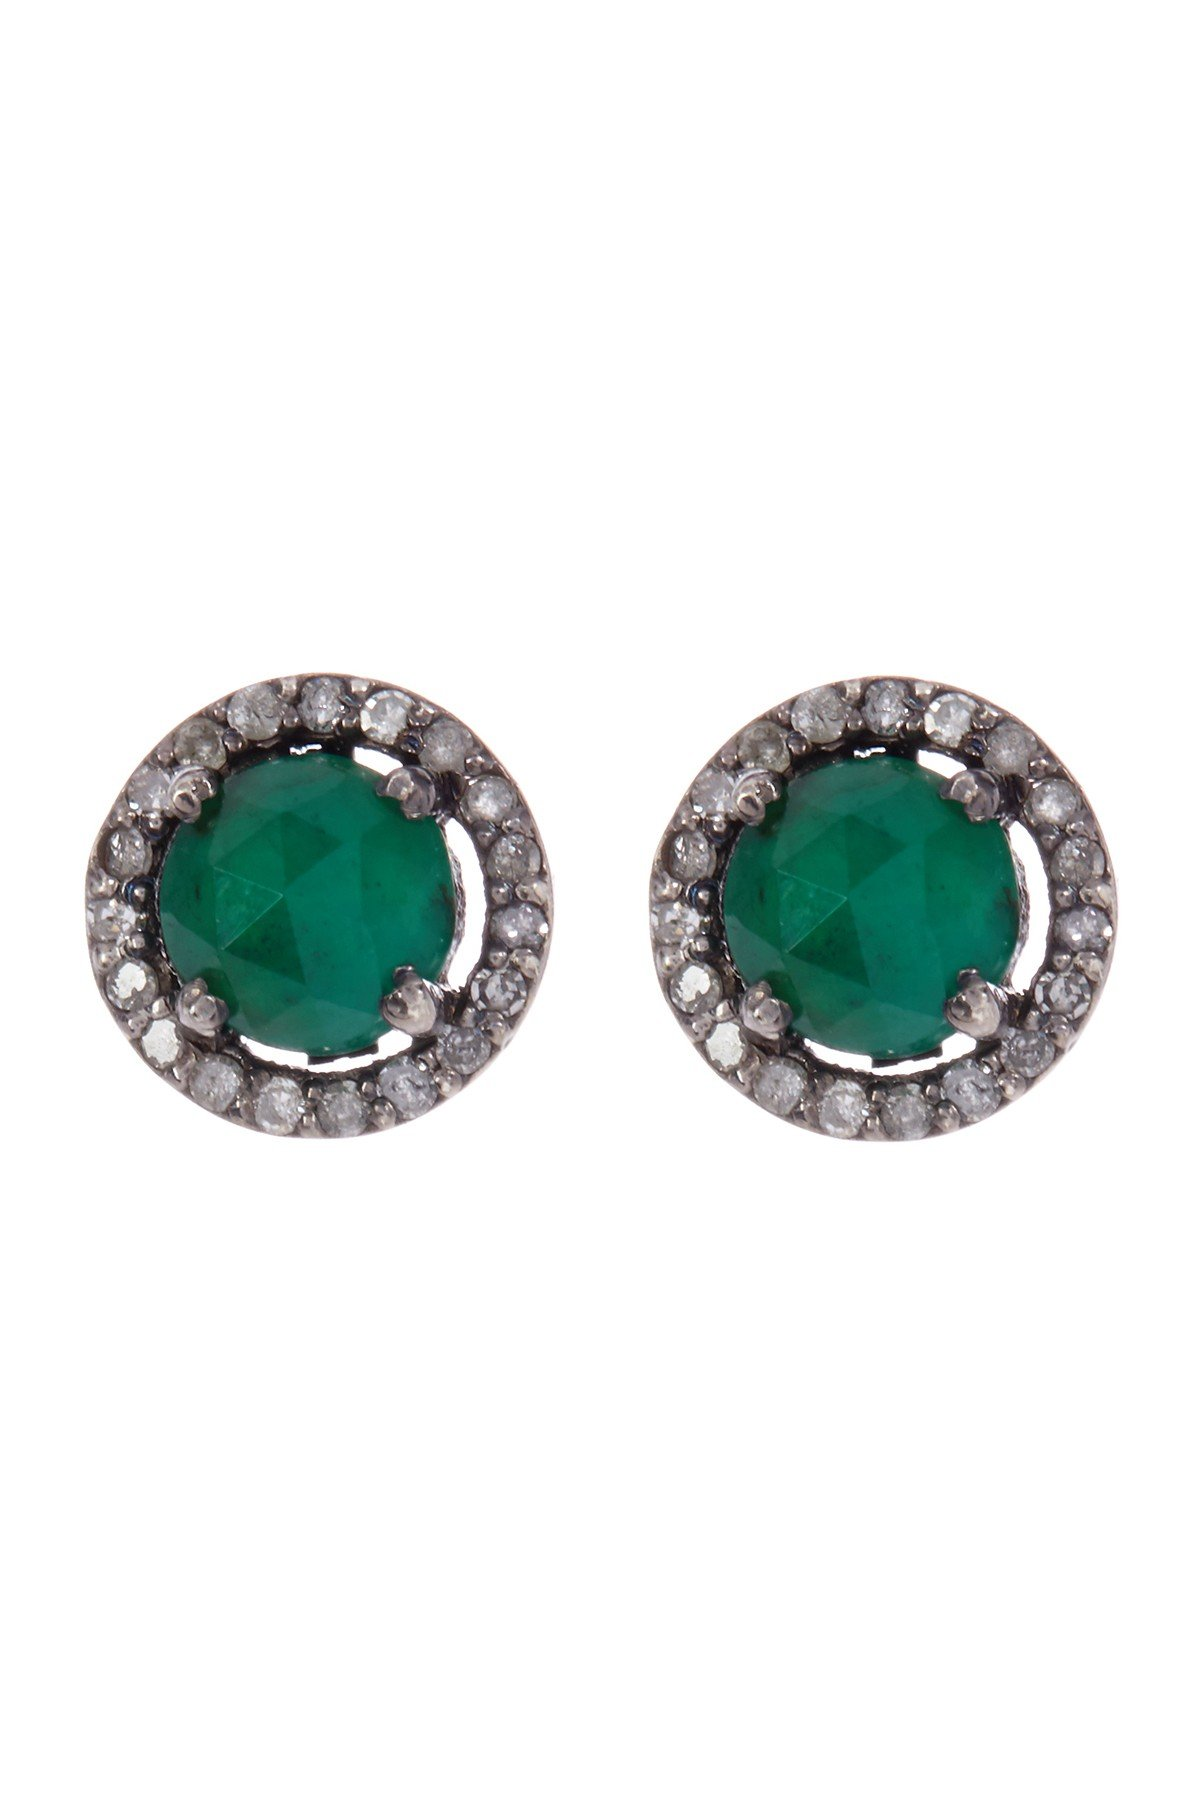 Emerald Halo Stud Earrings for Women| Sterling Silver 5mm Echo Stud Earrings With Champagne Diamond